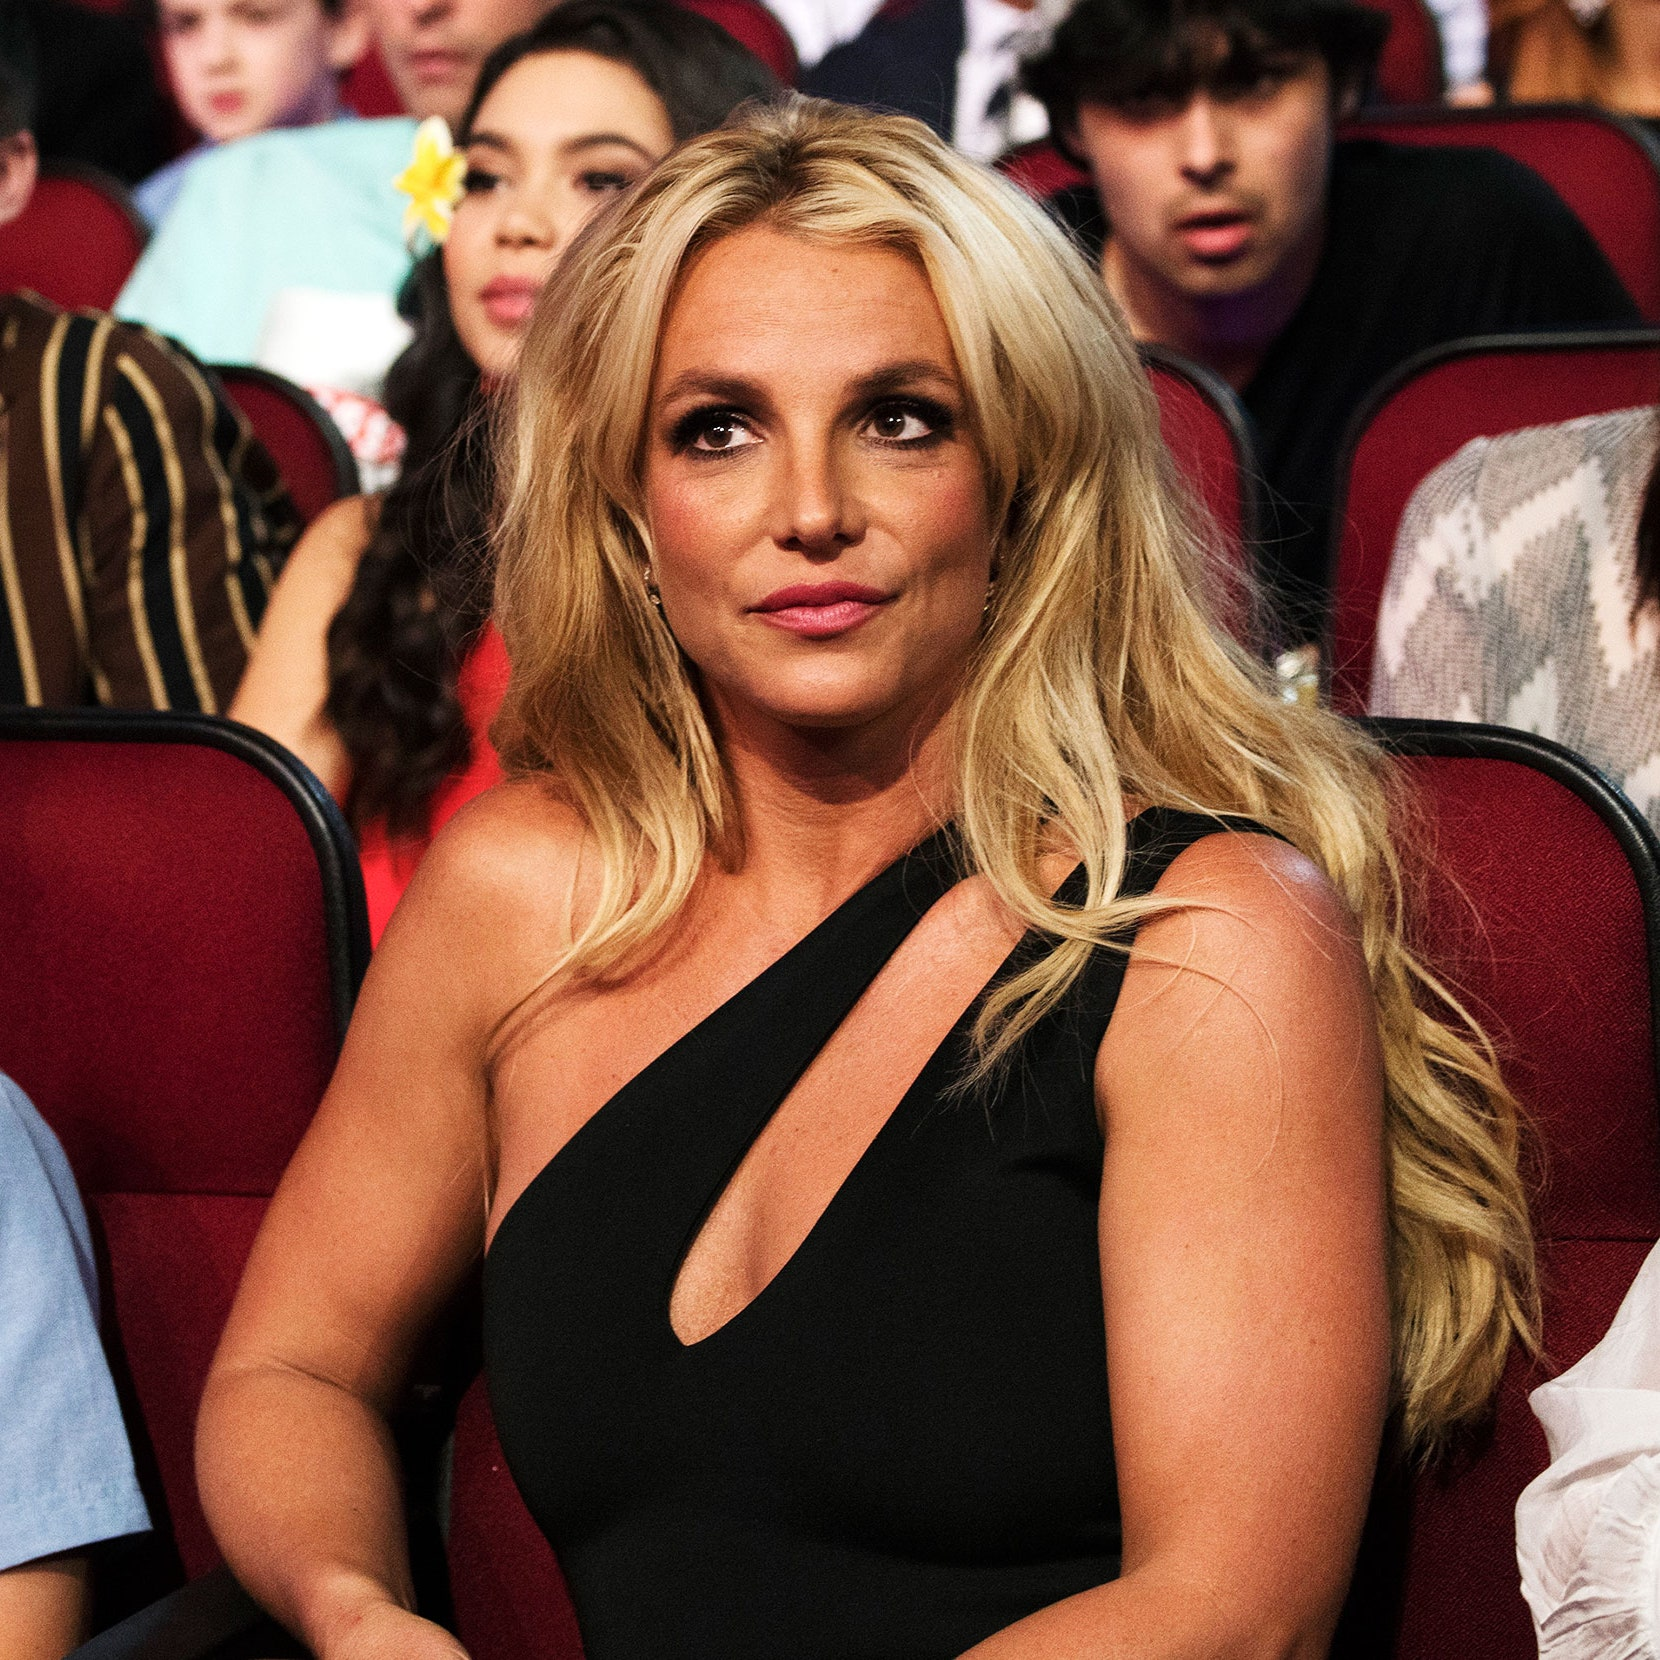 Britney Spears' father petitions to end Conservatorship